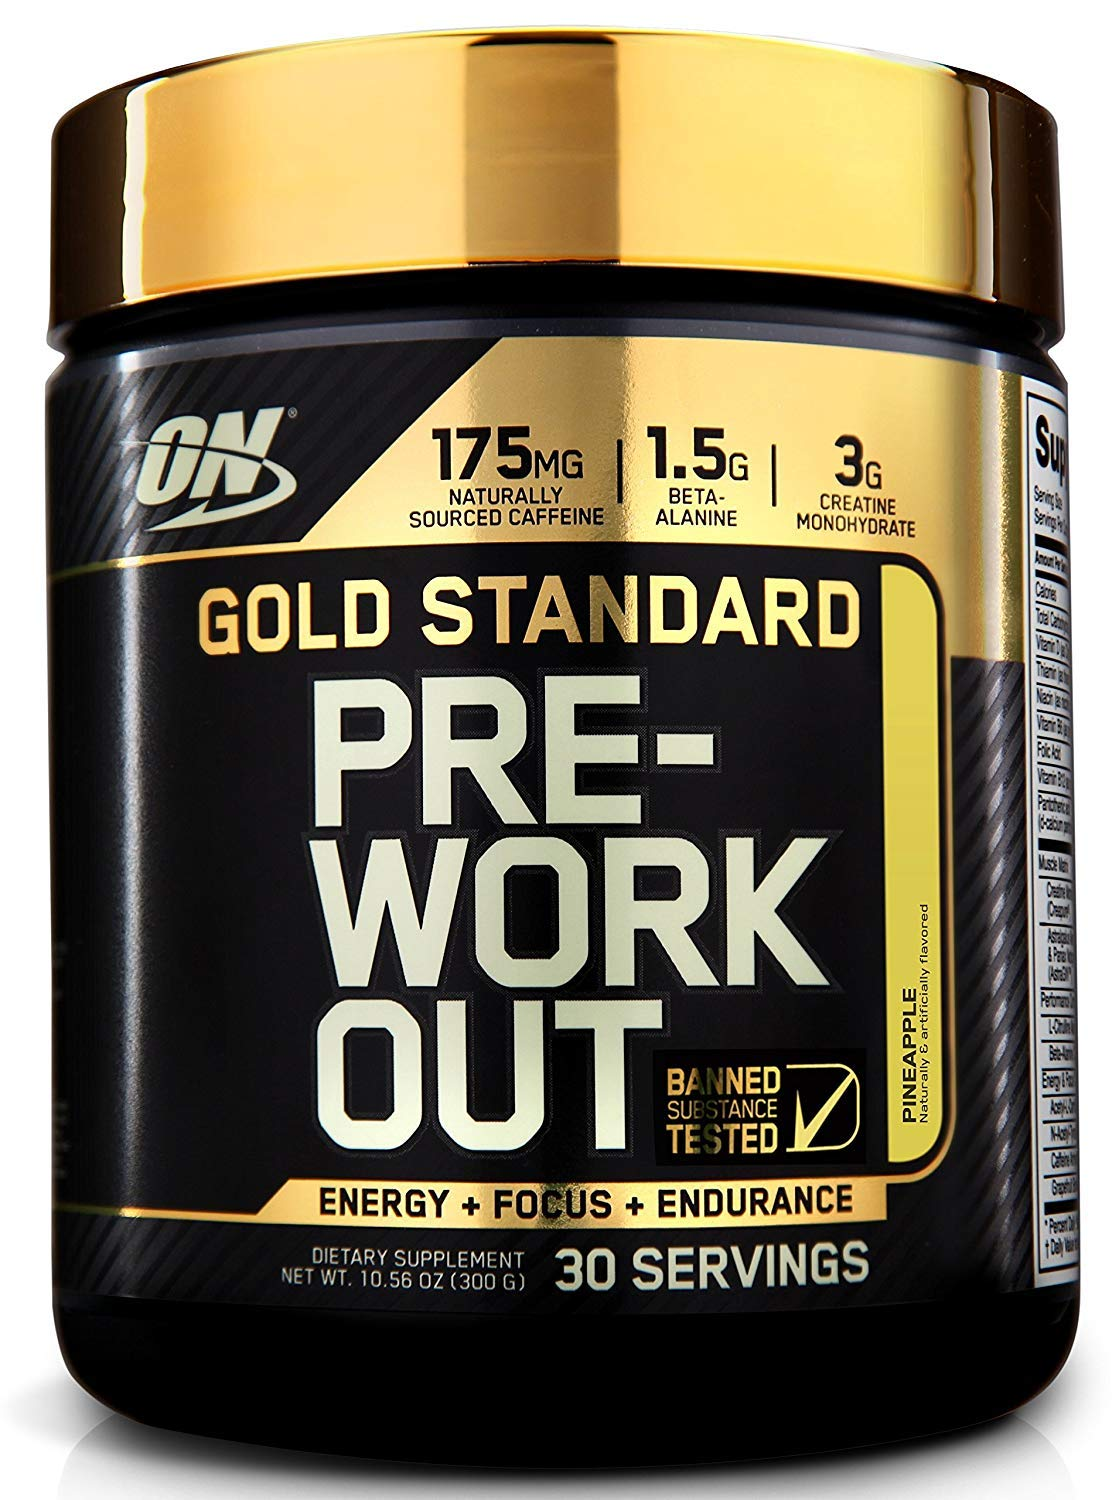 OPTIMUM NUTRITION GOLD STANDARD Pre-Workout with Creatine, Beta-Alanine, and Caffeine for Energy, Flavor: Pineapple, 30 Servings